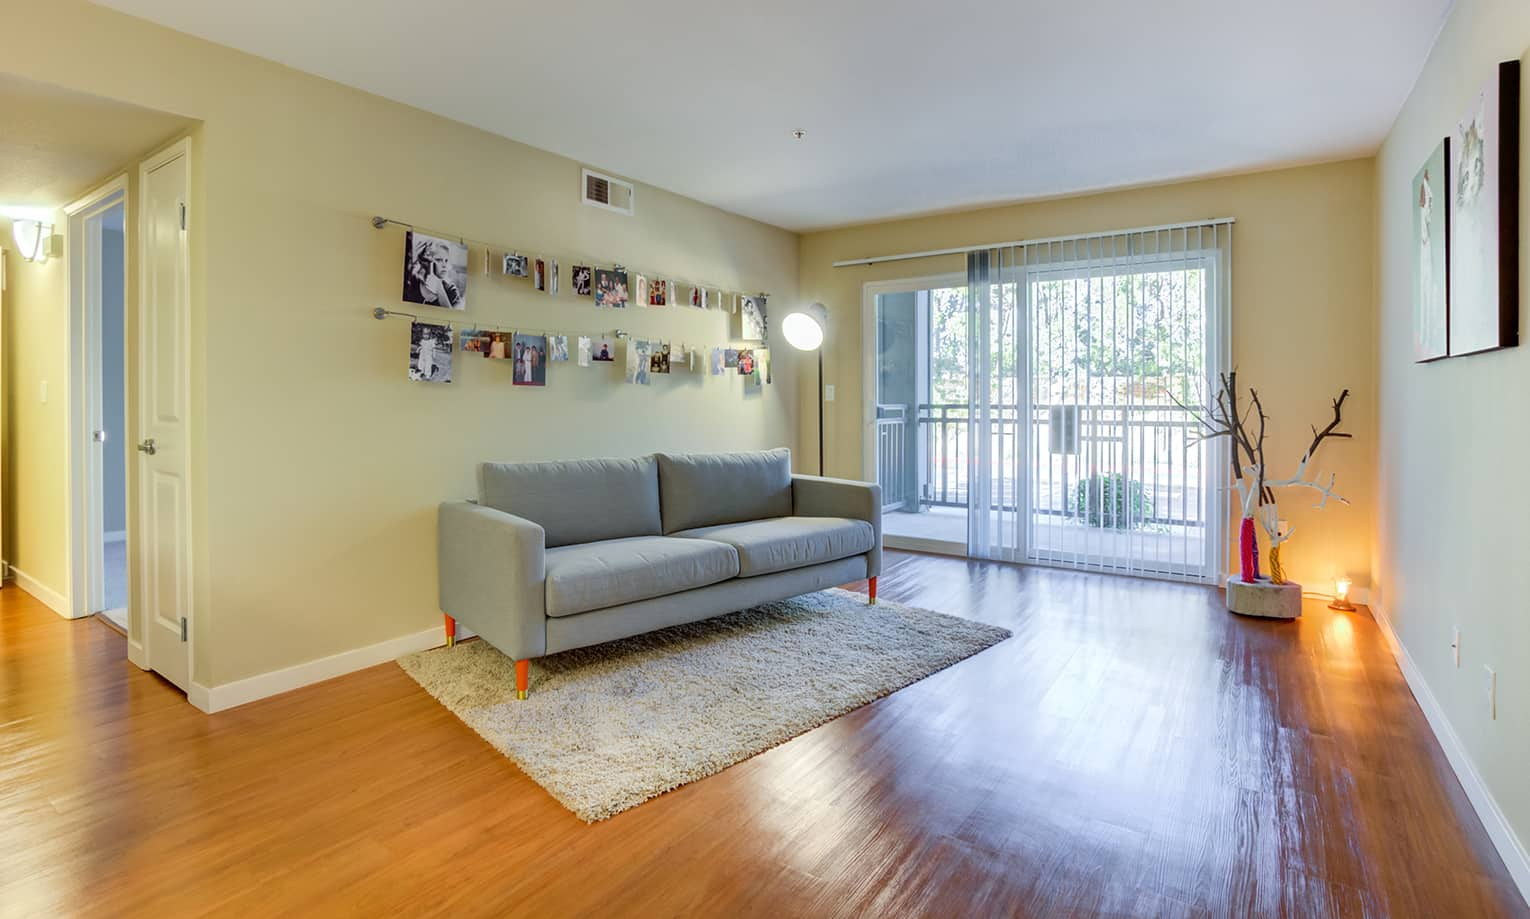 Kensington Place Apartments apartments in Sunnyvale CA to rent photo 7